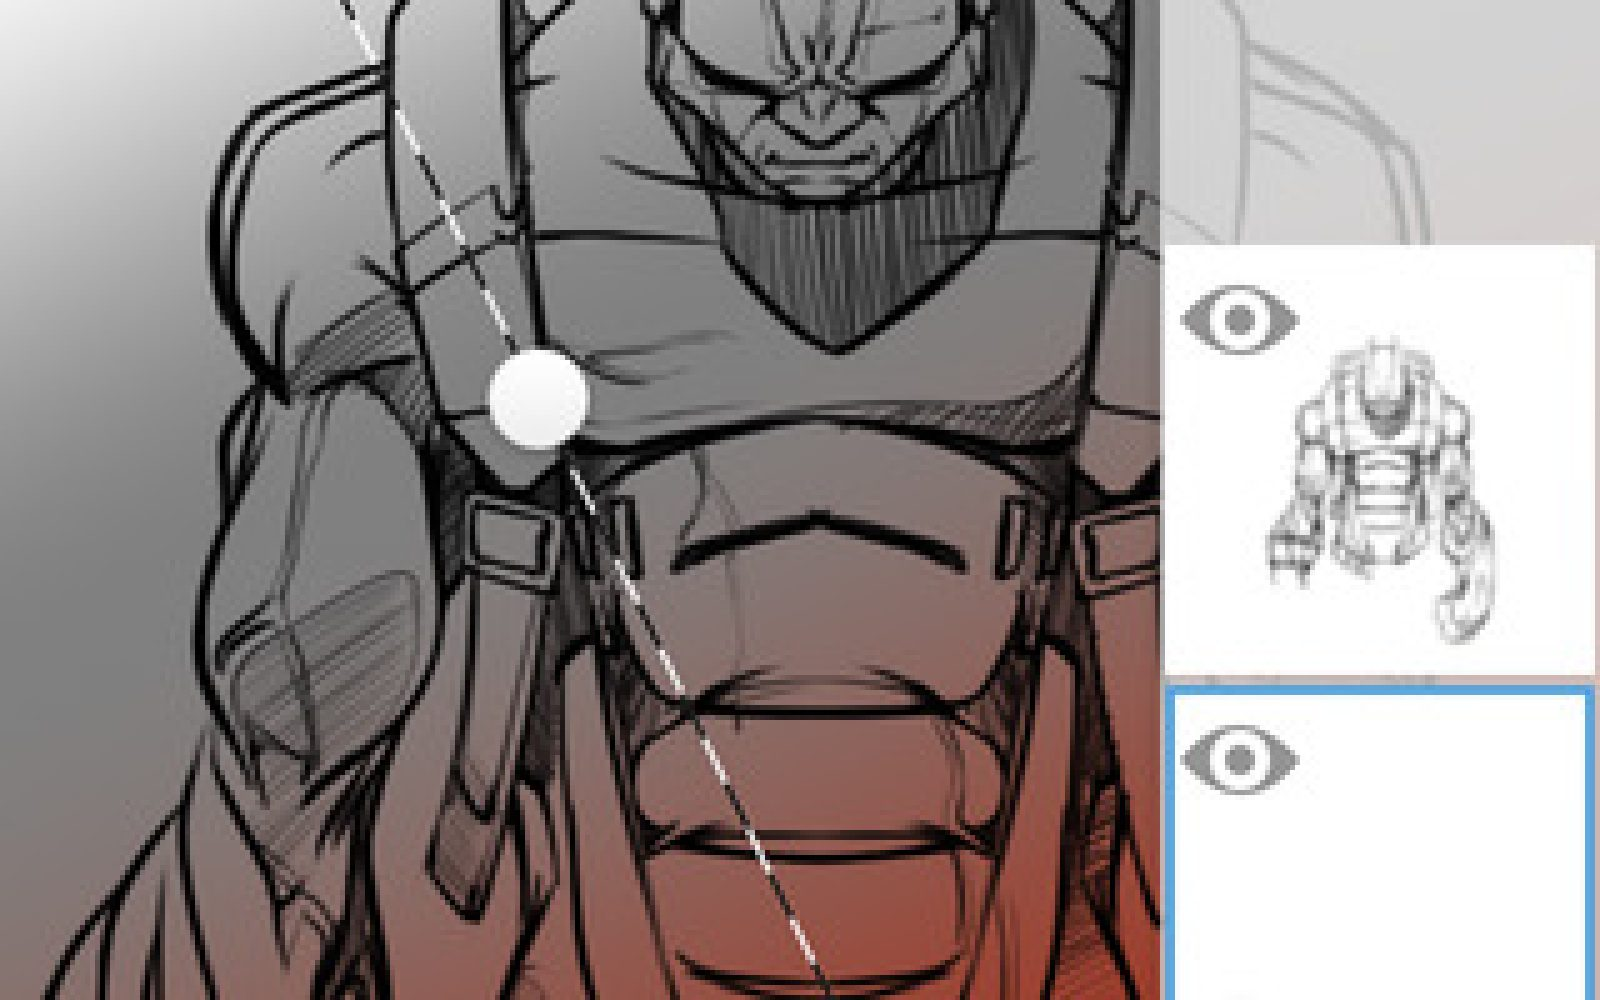 Autodesk releases all-new SketchBook app for iPhone & iPad